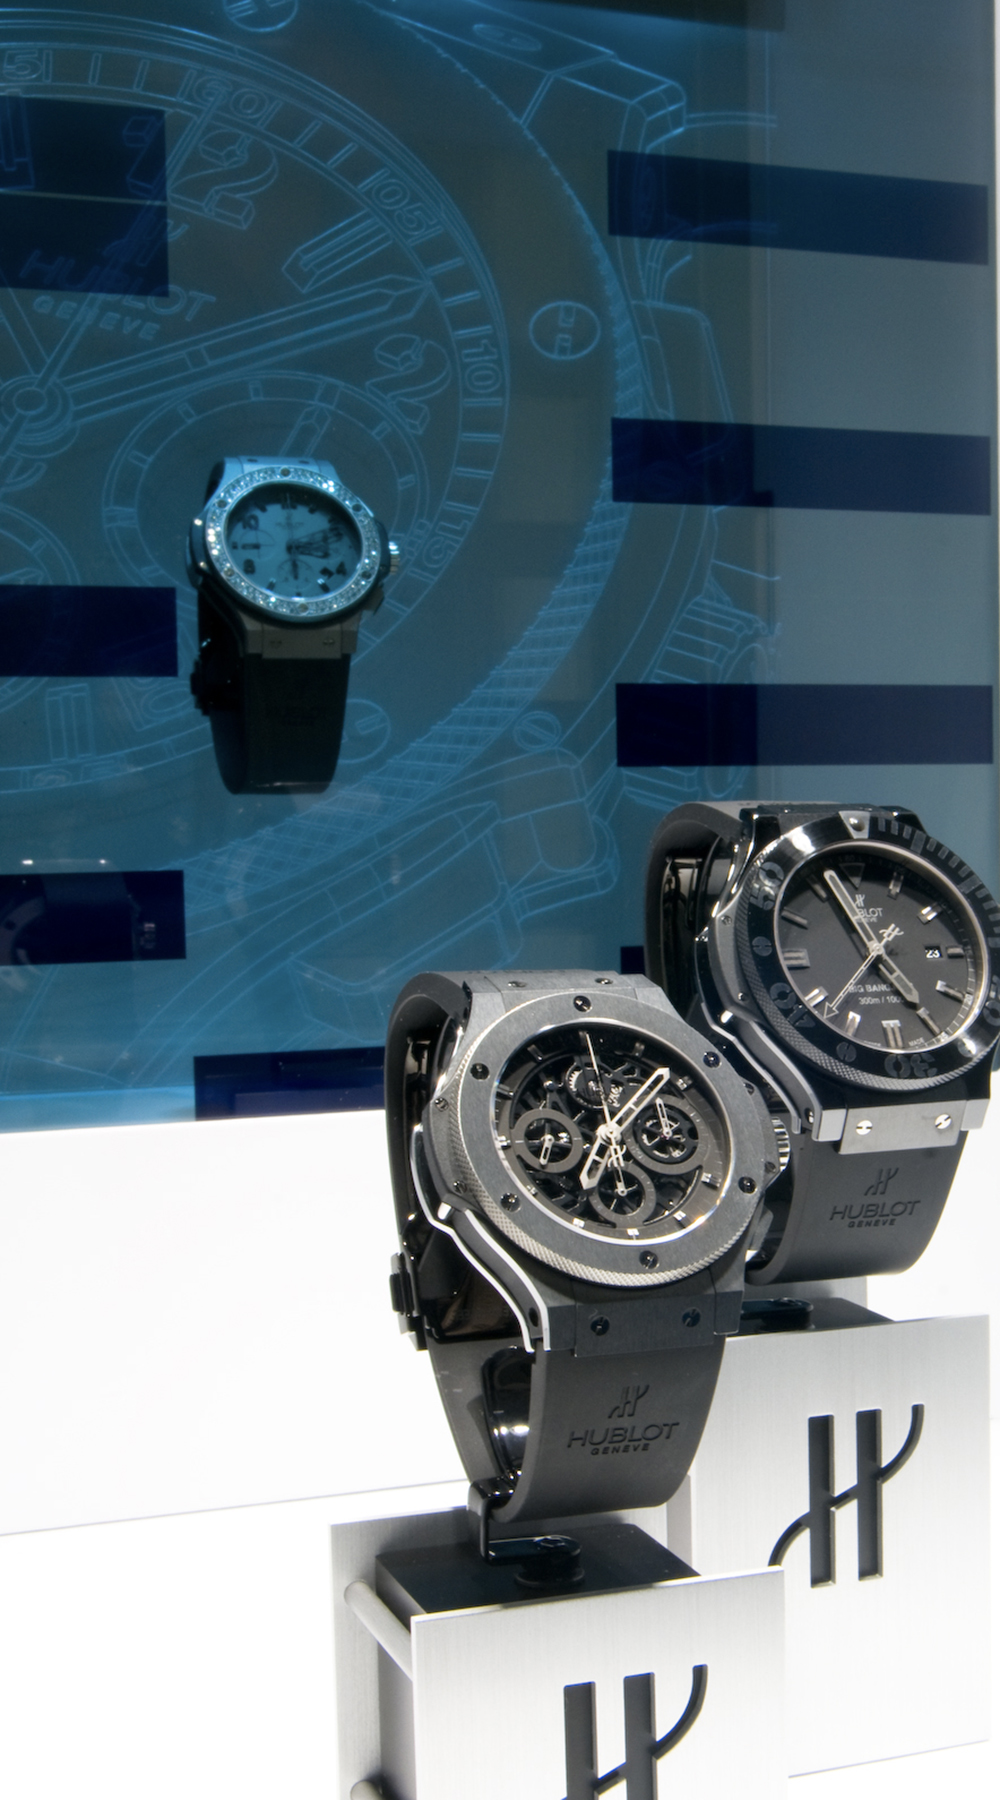 The Hublot boutique in Geneva opened in 2008 with the first Liquid Crystal Glass (LCG).